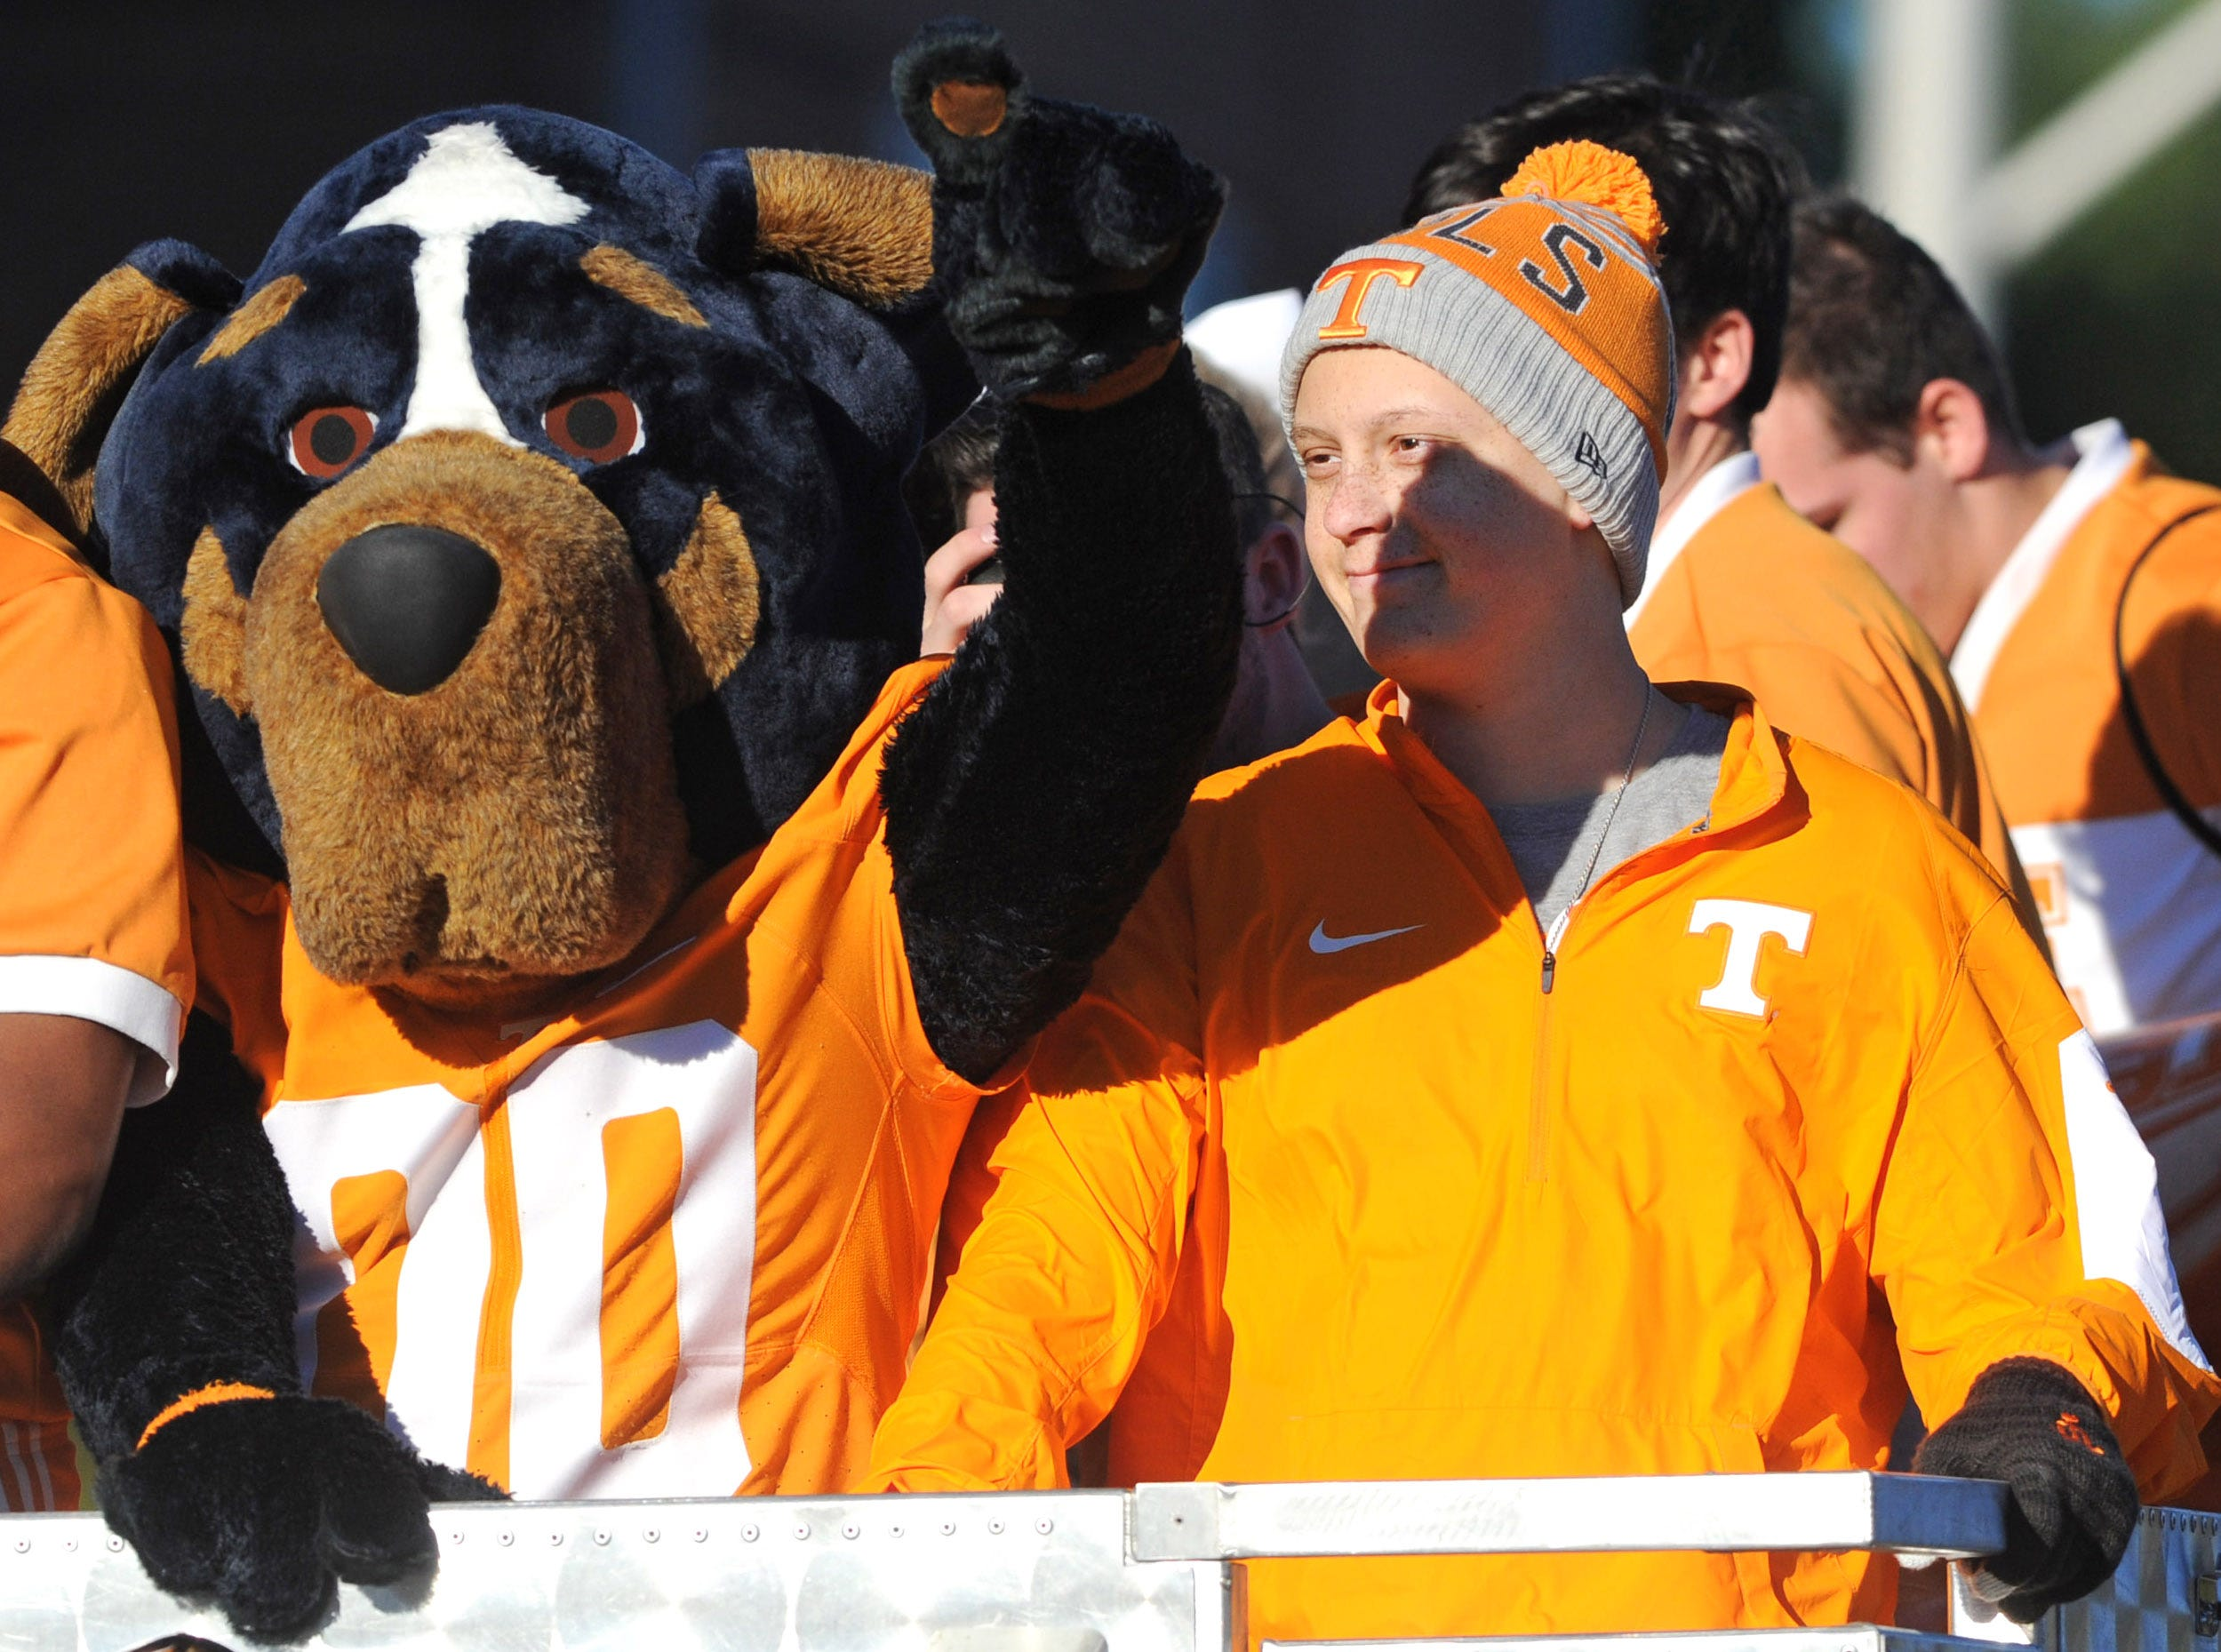 Noah Hays, 16, right, rides a fire engine with University of Tennessee mascot, Smokey, during a homecoming parade on Volunteer Blvd. in Knoxville on Friday, Nov. 13, 2015.